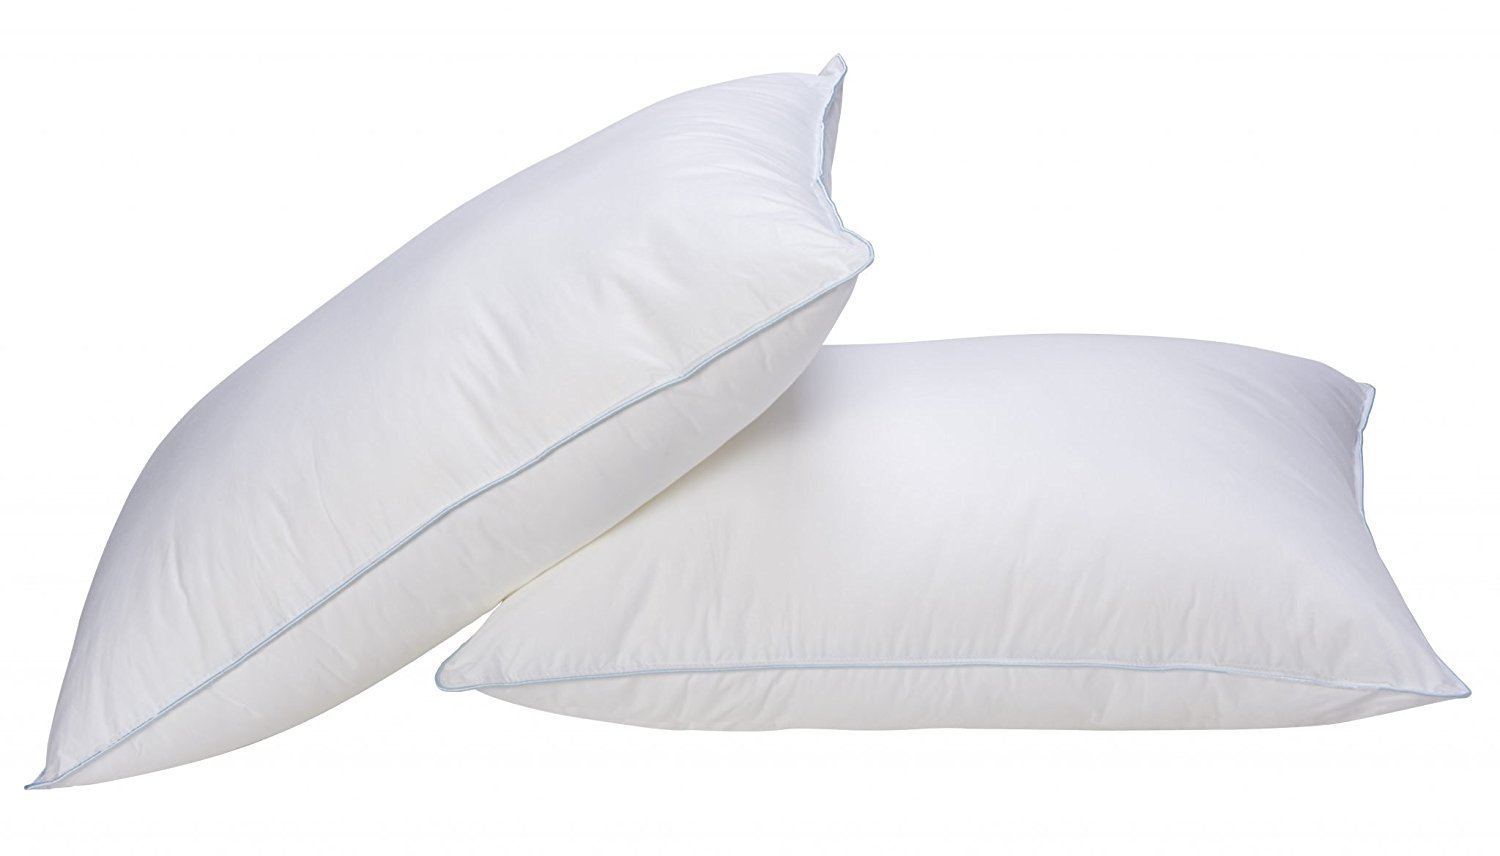 #1 Pair Of Premium Super Microfibre Bounce Back Pillows, Department Store Quality – EXCELLENT for Allergy Sufferers. Goose Down Like - Soft to Medium Support By Rohi Intelo Textiles